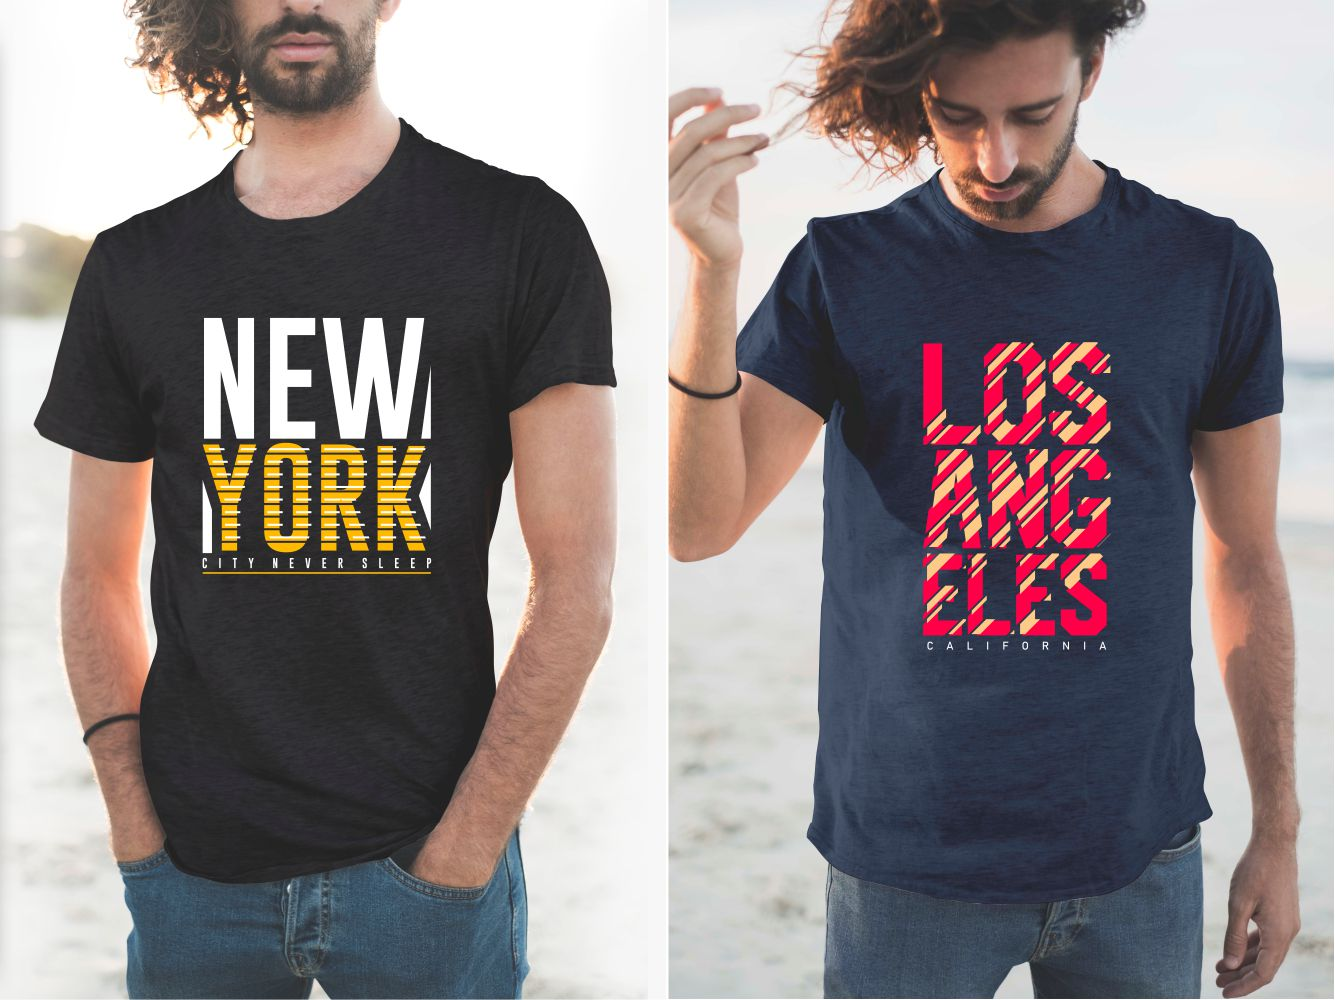 T-shirts are embossed in bright colors - red and yellow - the names of large cities in the United States.